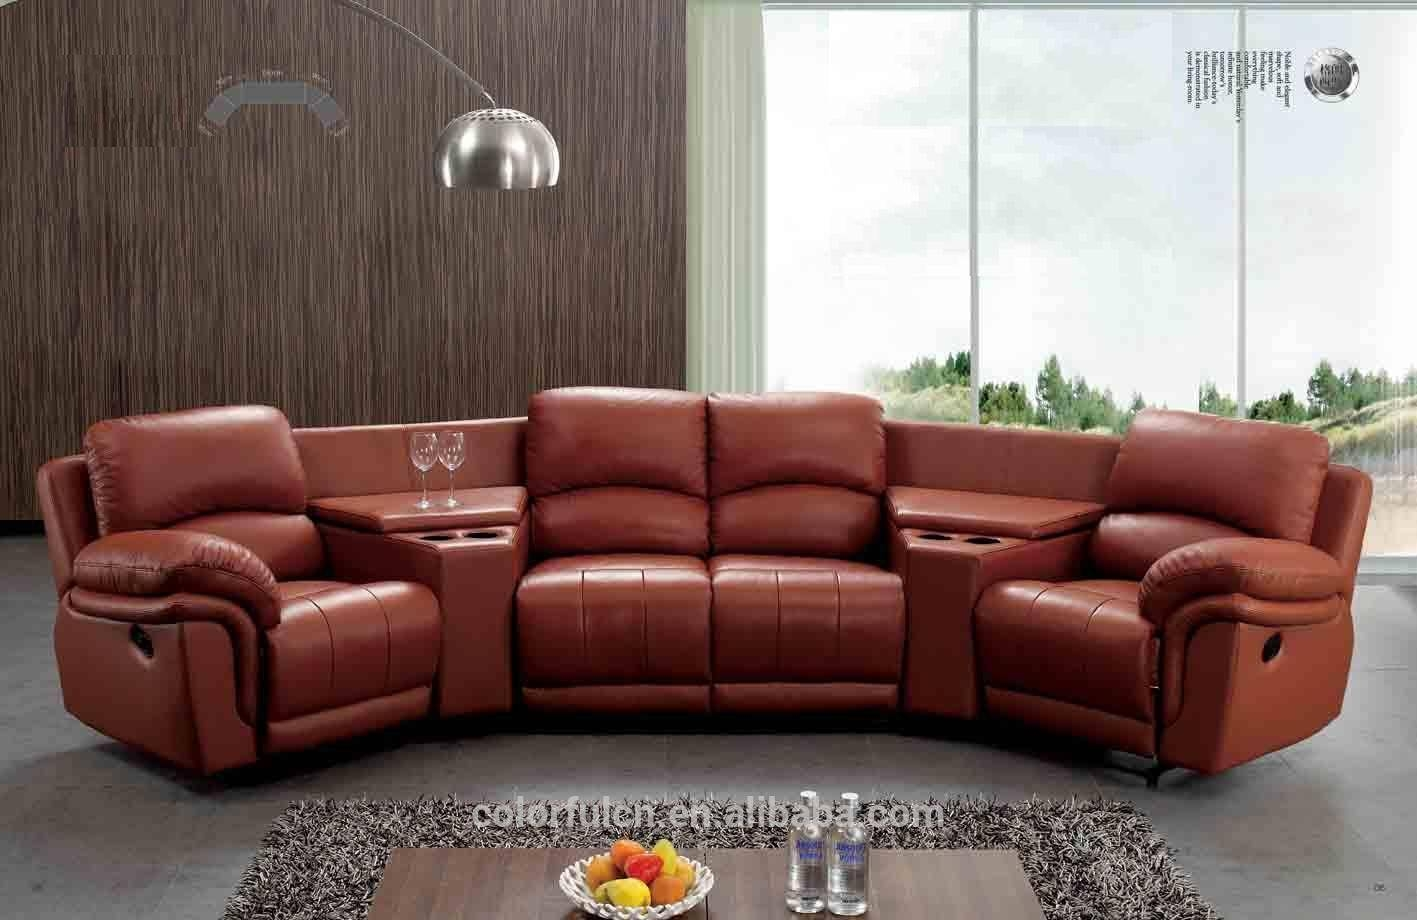 Semi-Circle Sofa, Semi-Circle Sofa Suppliers And Manufacturers At with regard to Circle Sofas (Image 18 of 25)